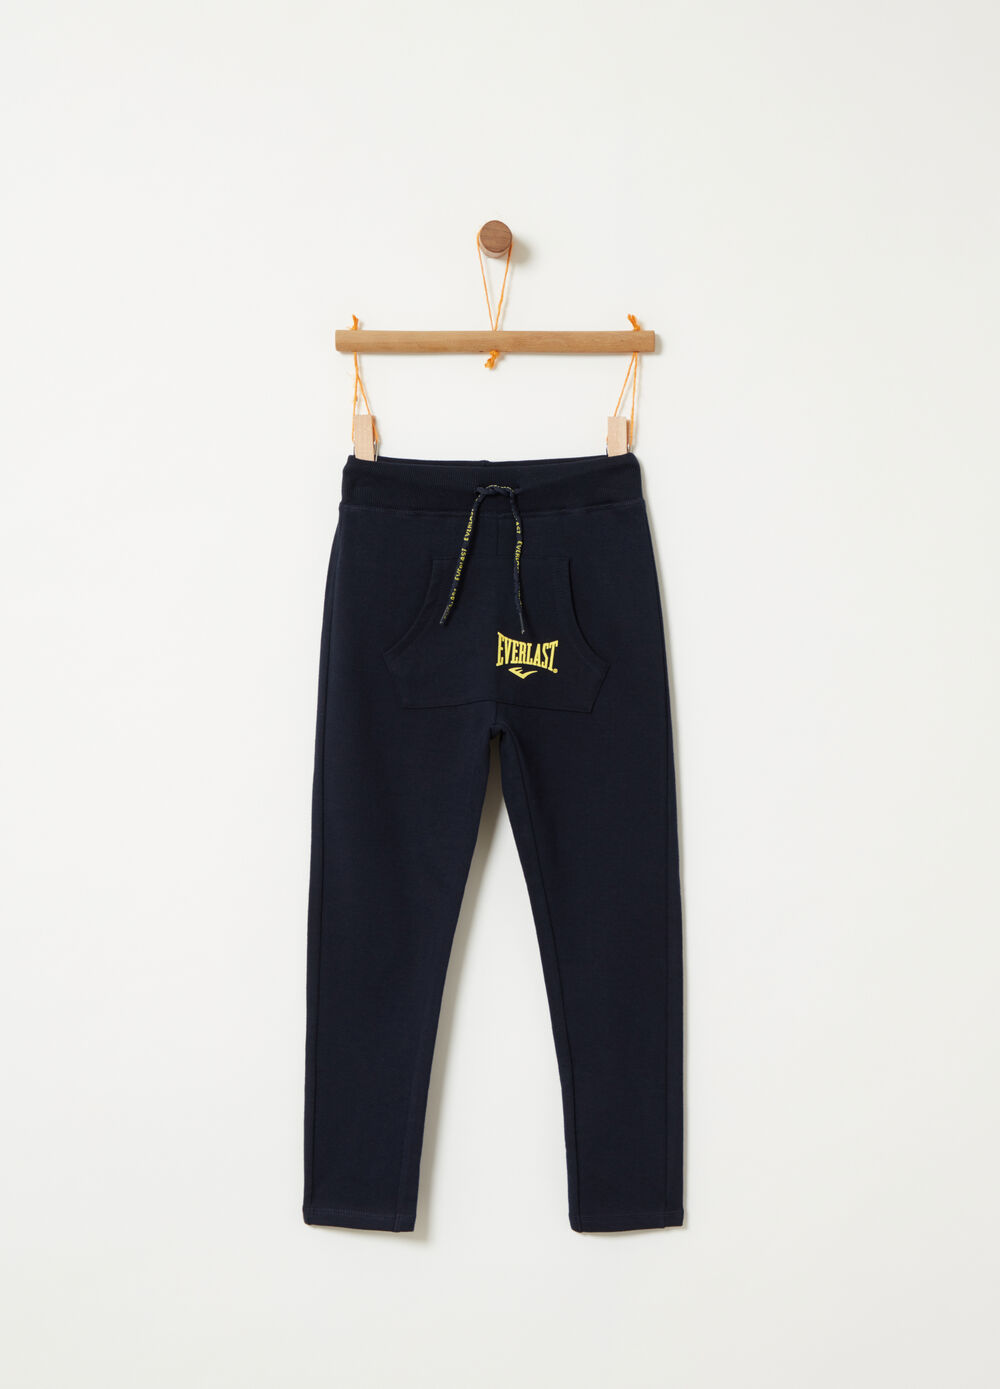 Trousers with drawstring and pouch pocket